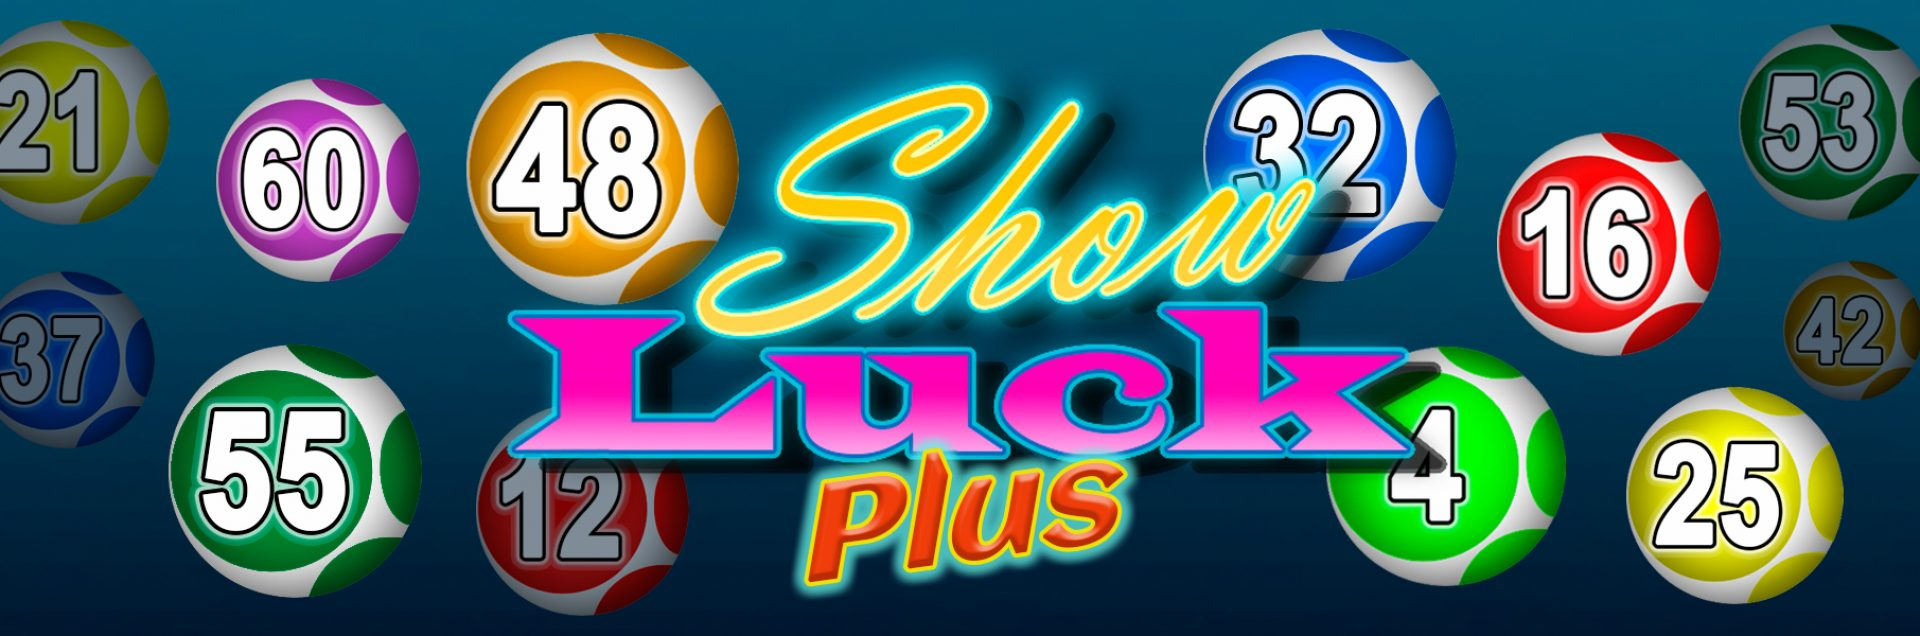 Show_Luck_Plus_00